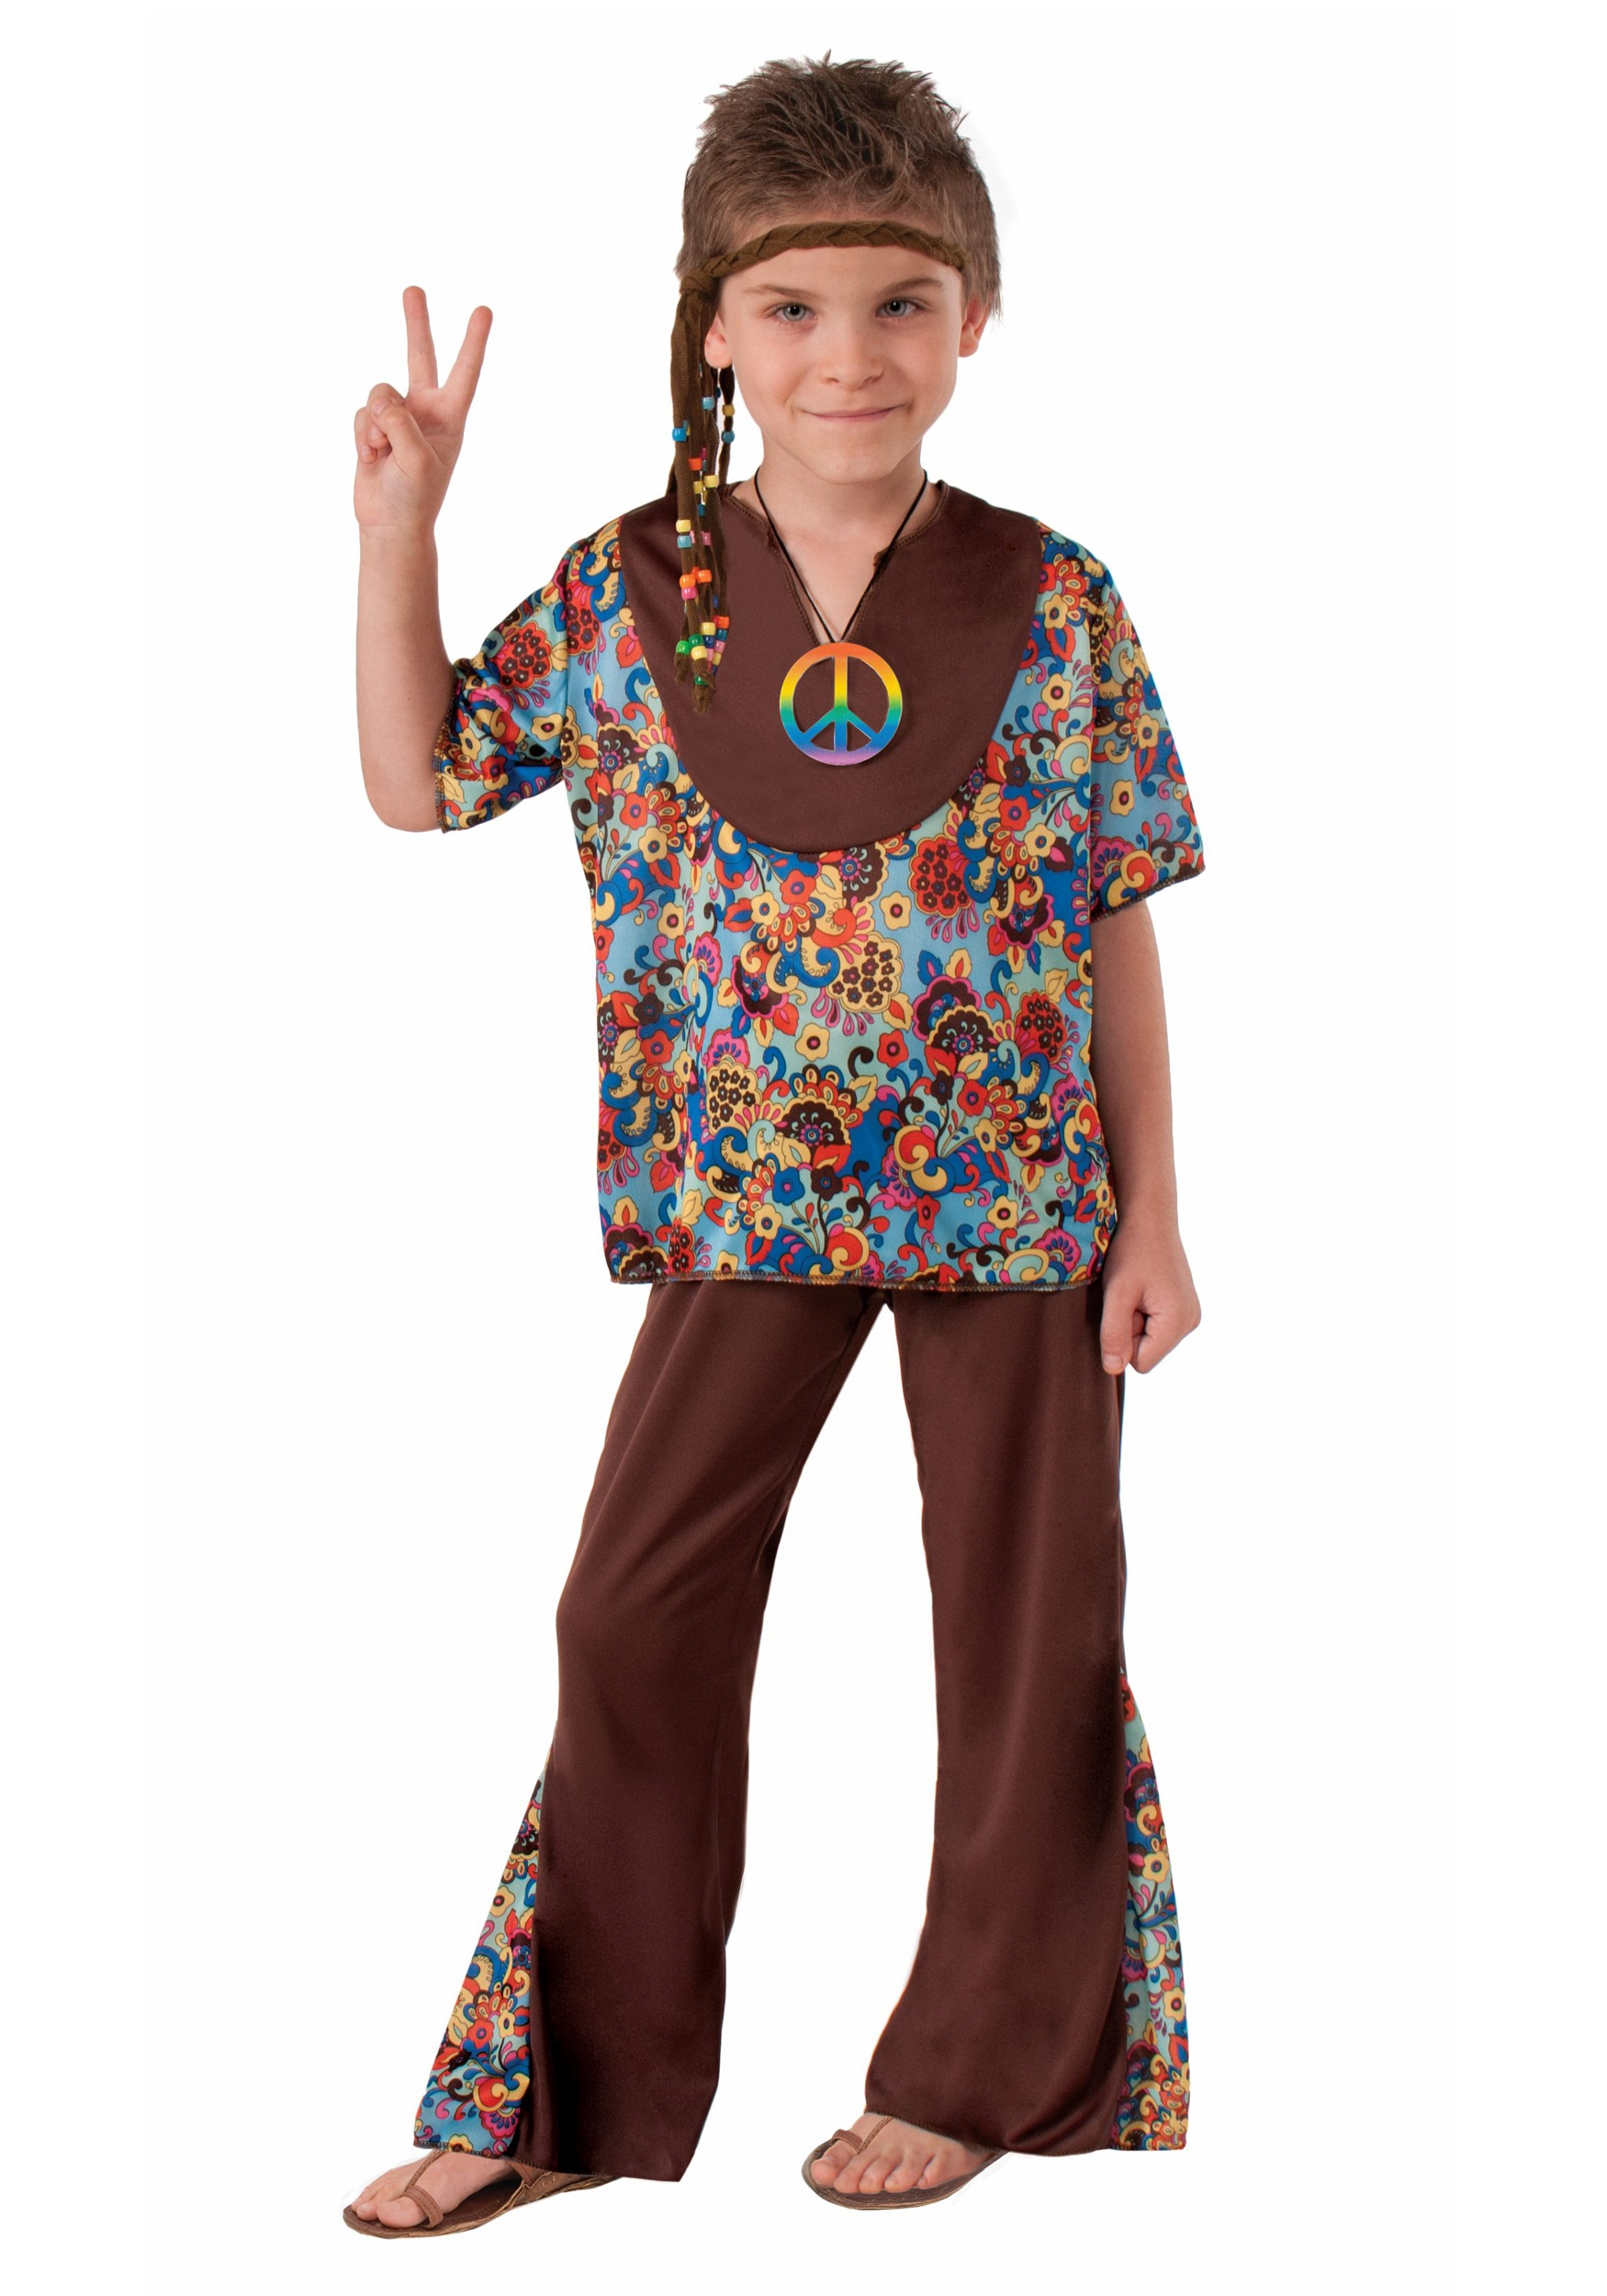 Hippie Boy Costume  sc 1 st  Halloween Costumes : hippie costume kid - Germanpascual.Com